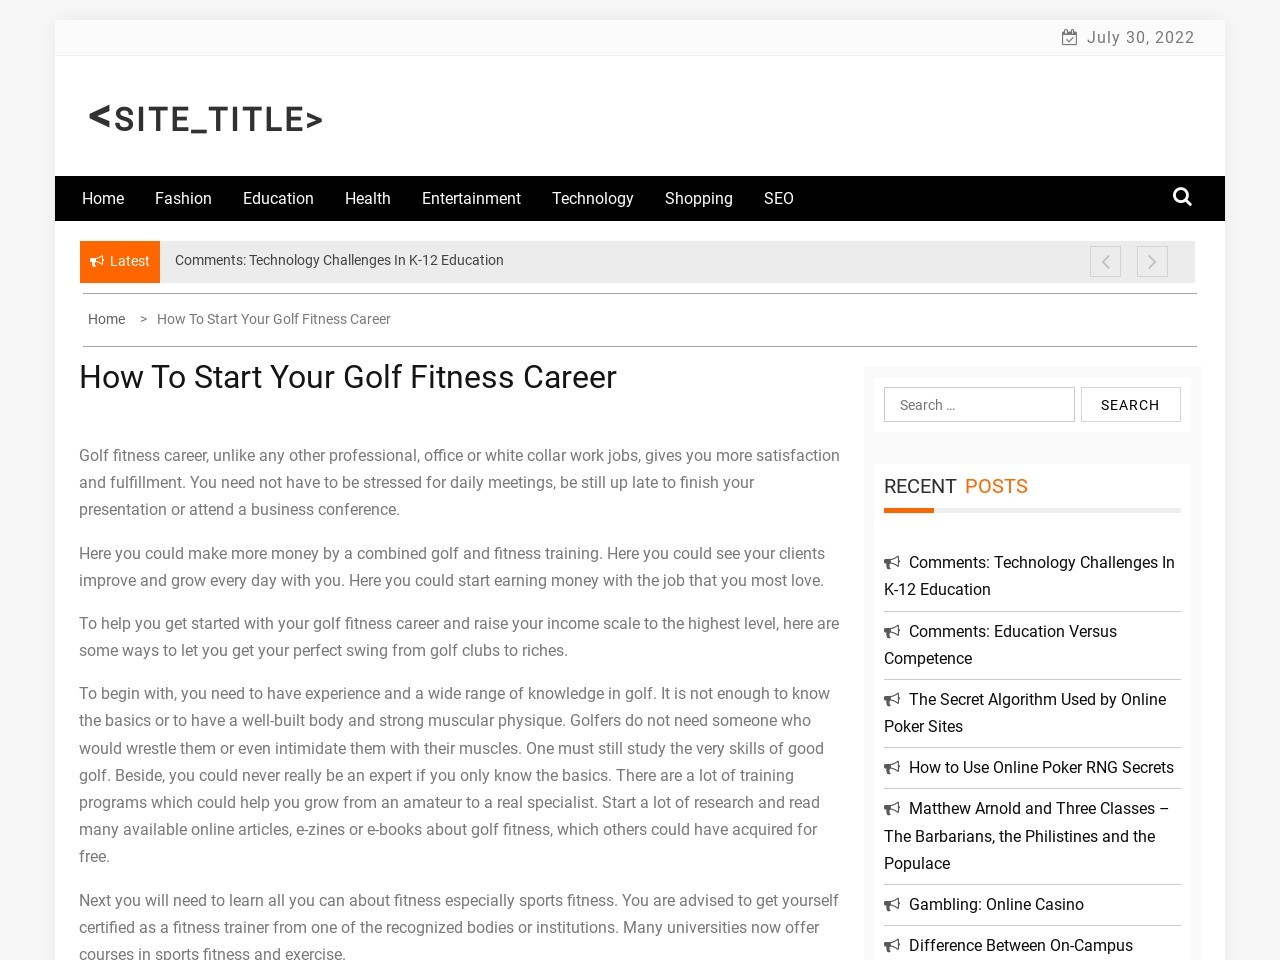 How To Start Your Golf Fitness Career